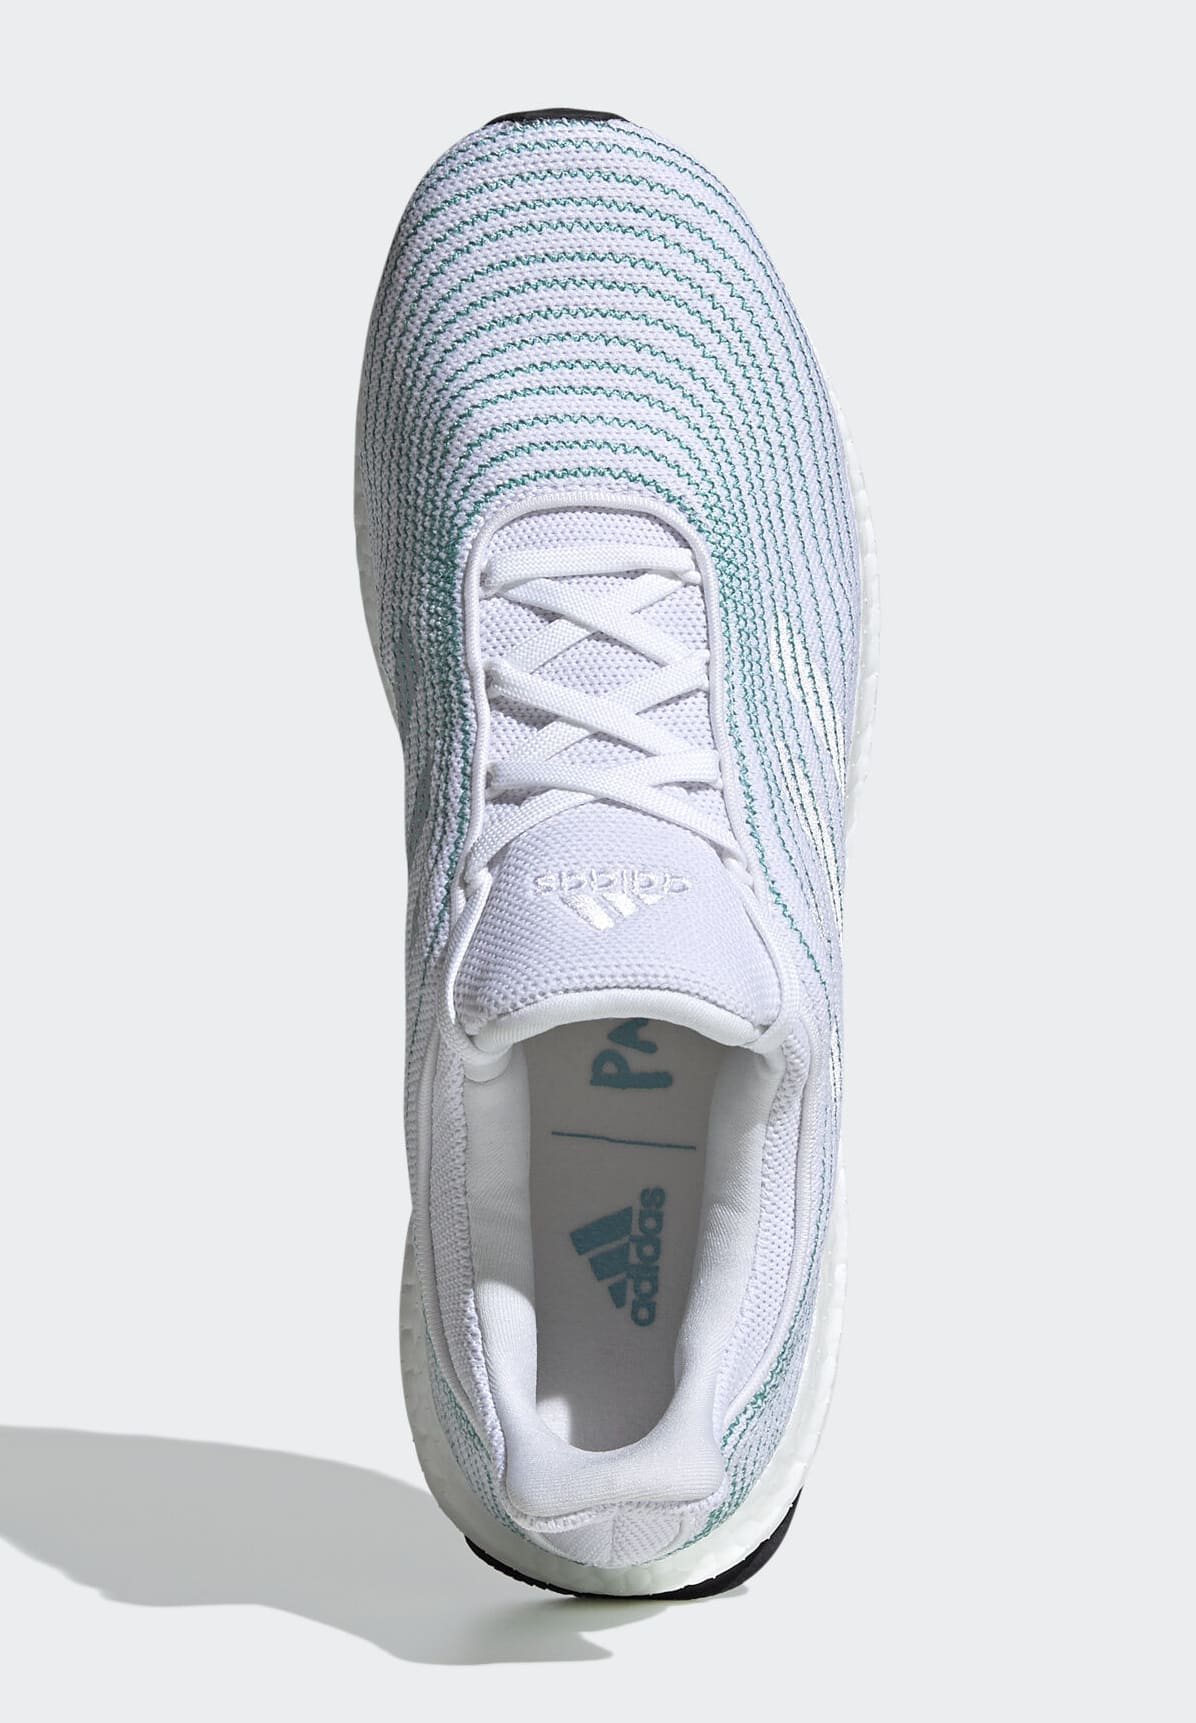 Parley x Adidas Ultra Boost Uncaged EH1173 Top